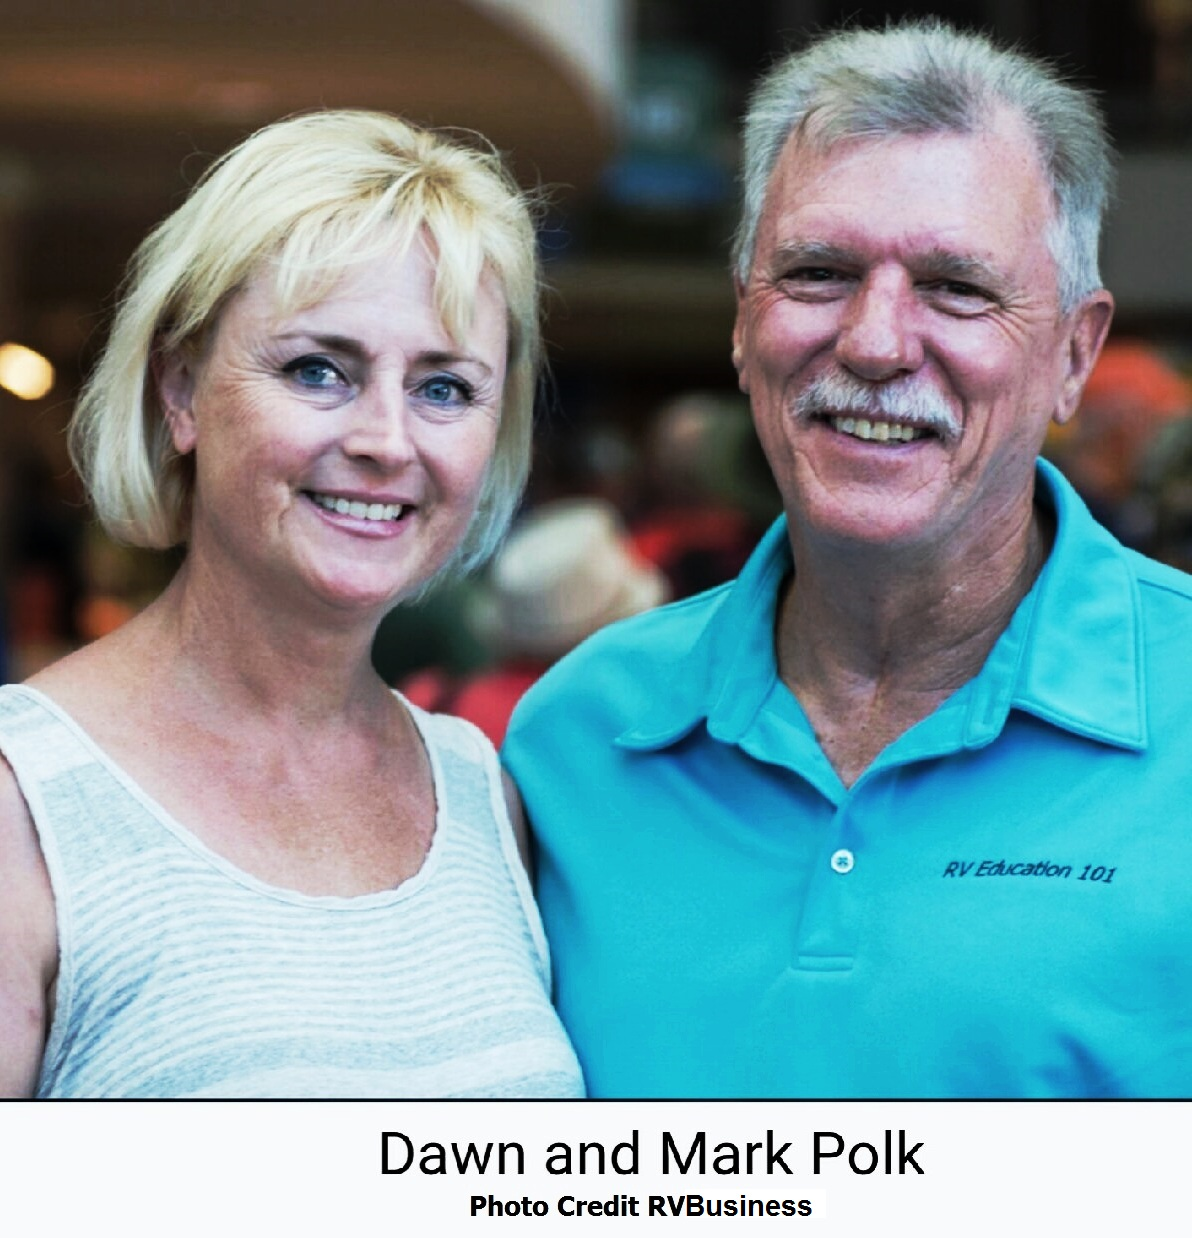 Dawn and Mark Polk photo credit RV Business